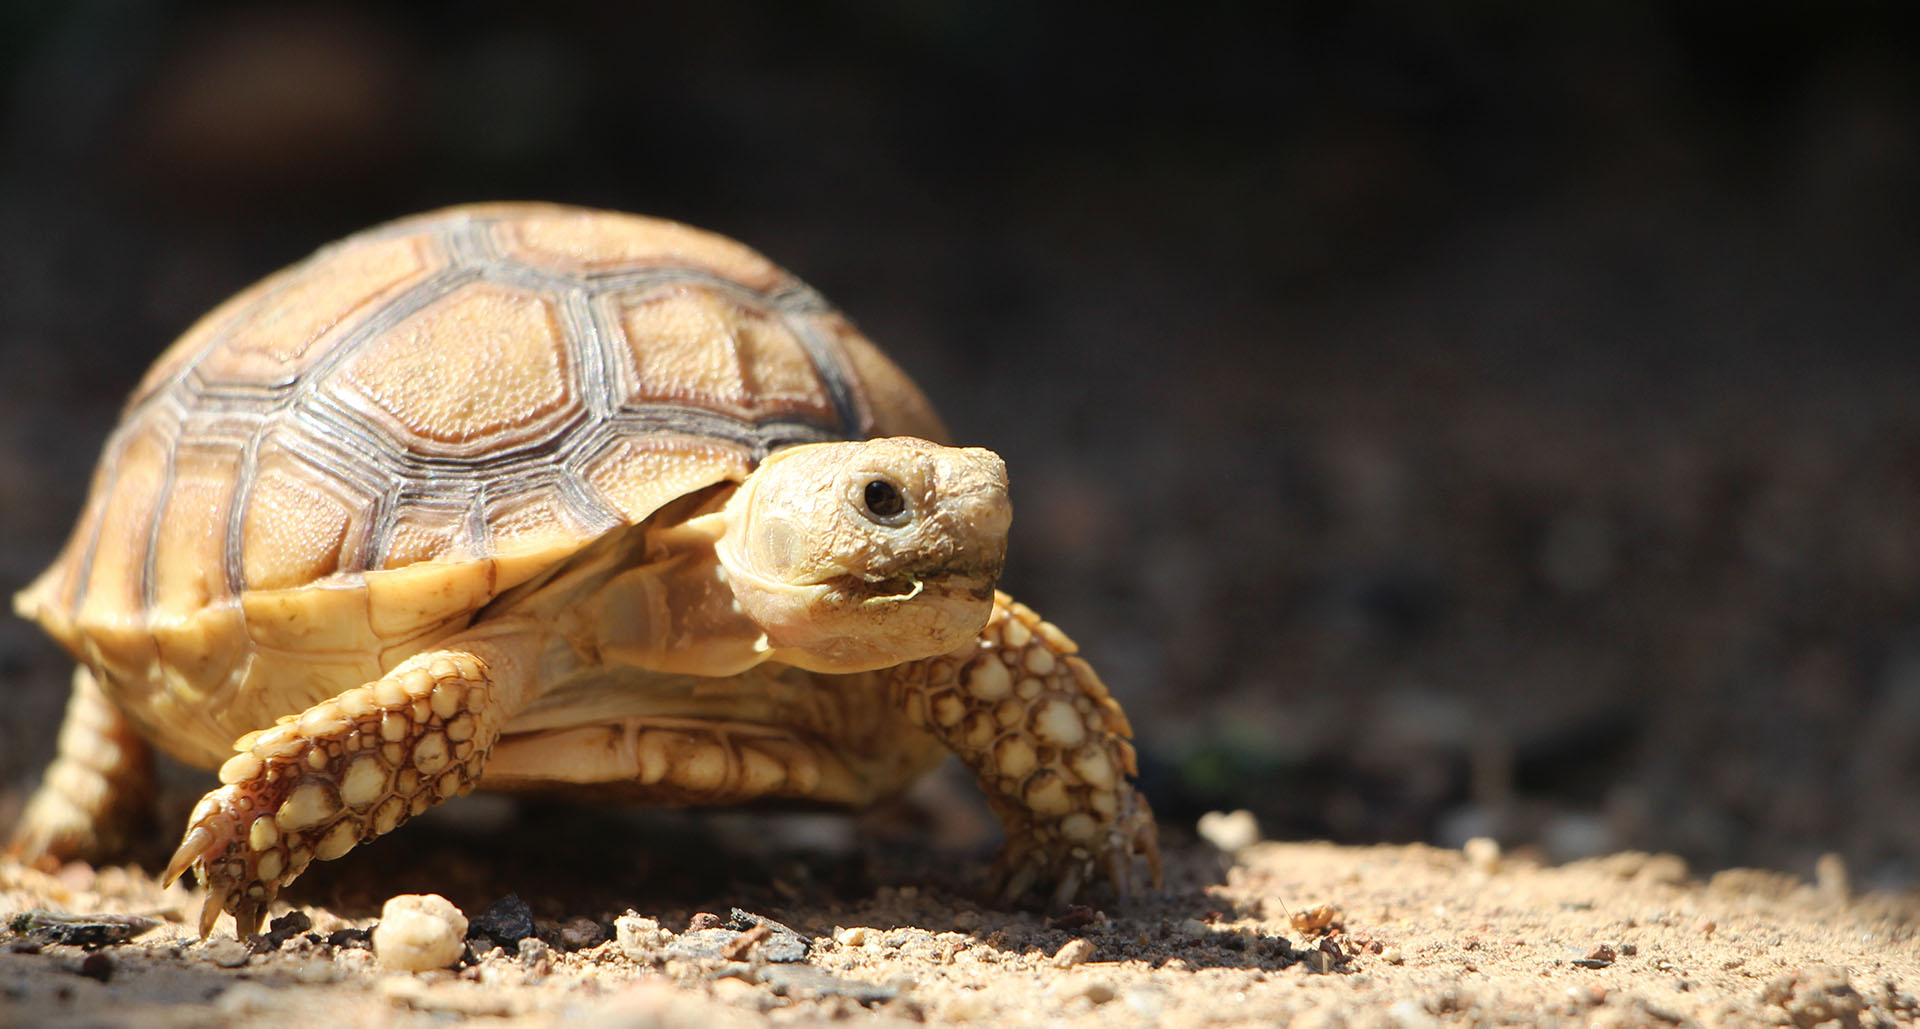 Basic Husbandry for Tortoises